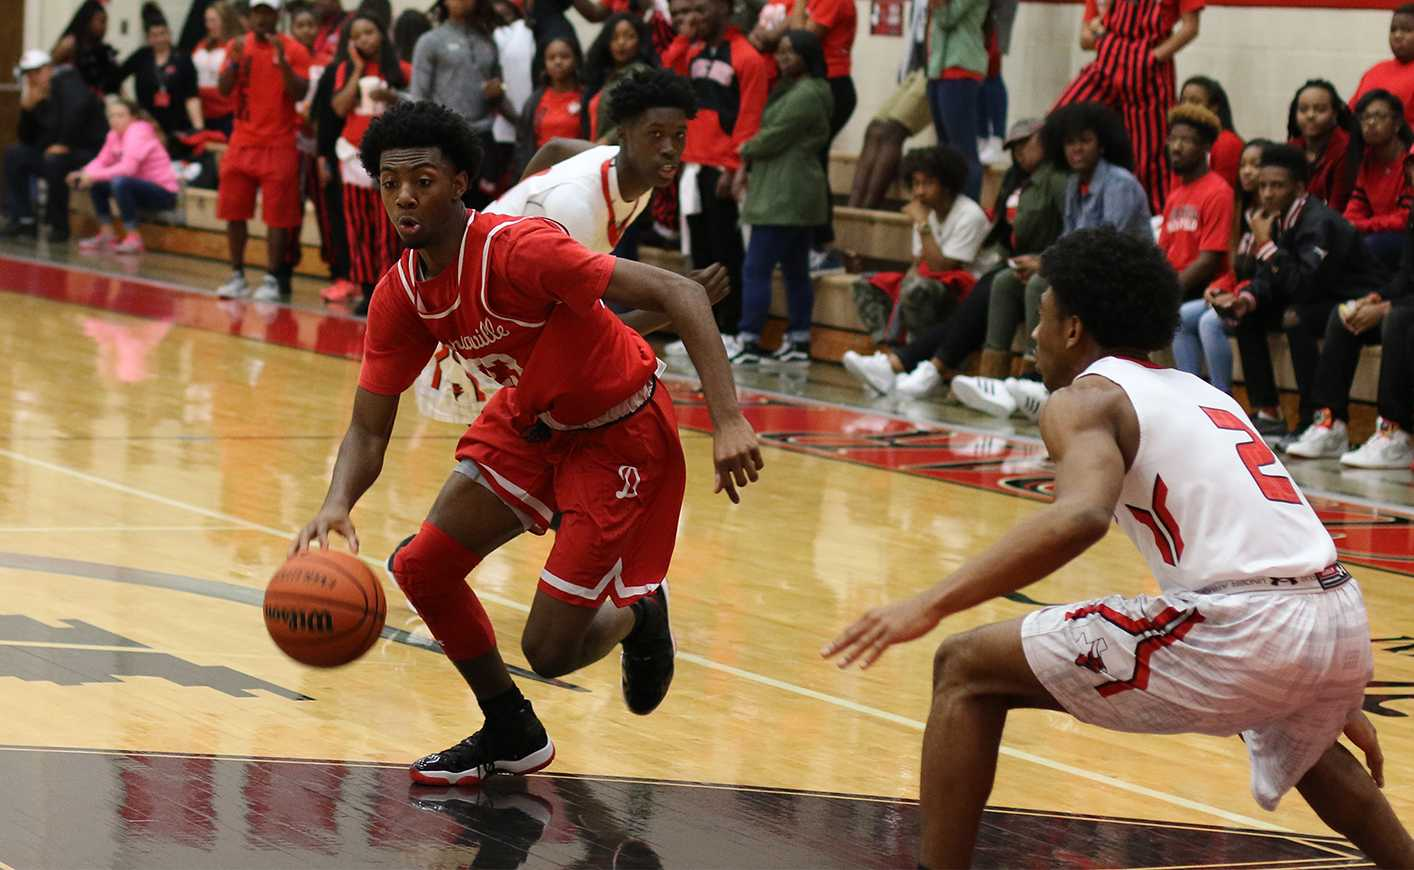 Duncanville player drives in paint as he is loosely guarded by a Cedar Hill player. (photo by: Ricardo Martin)